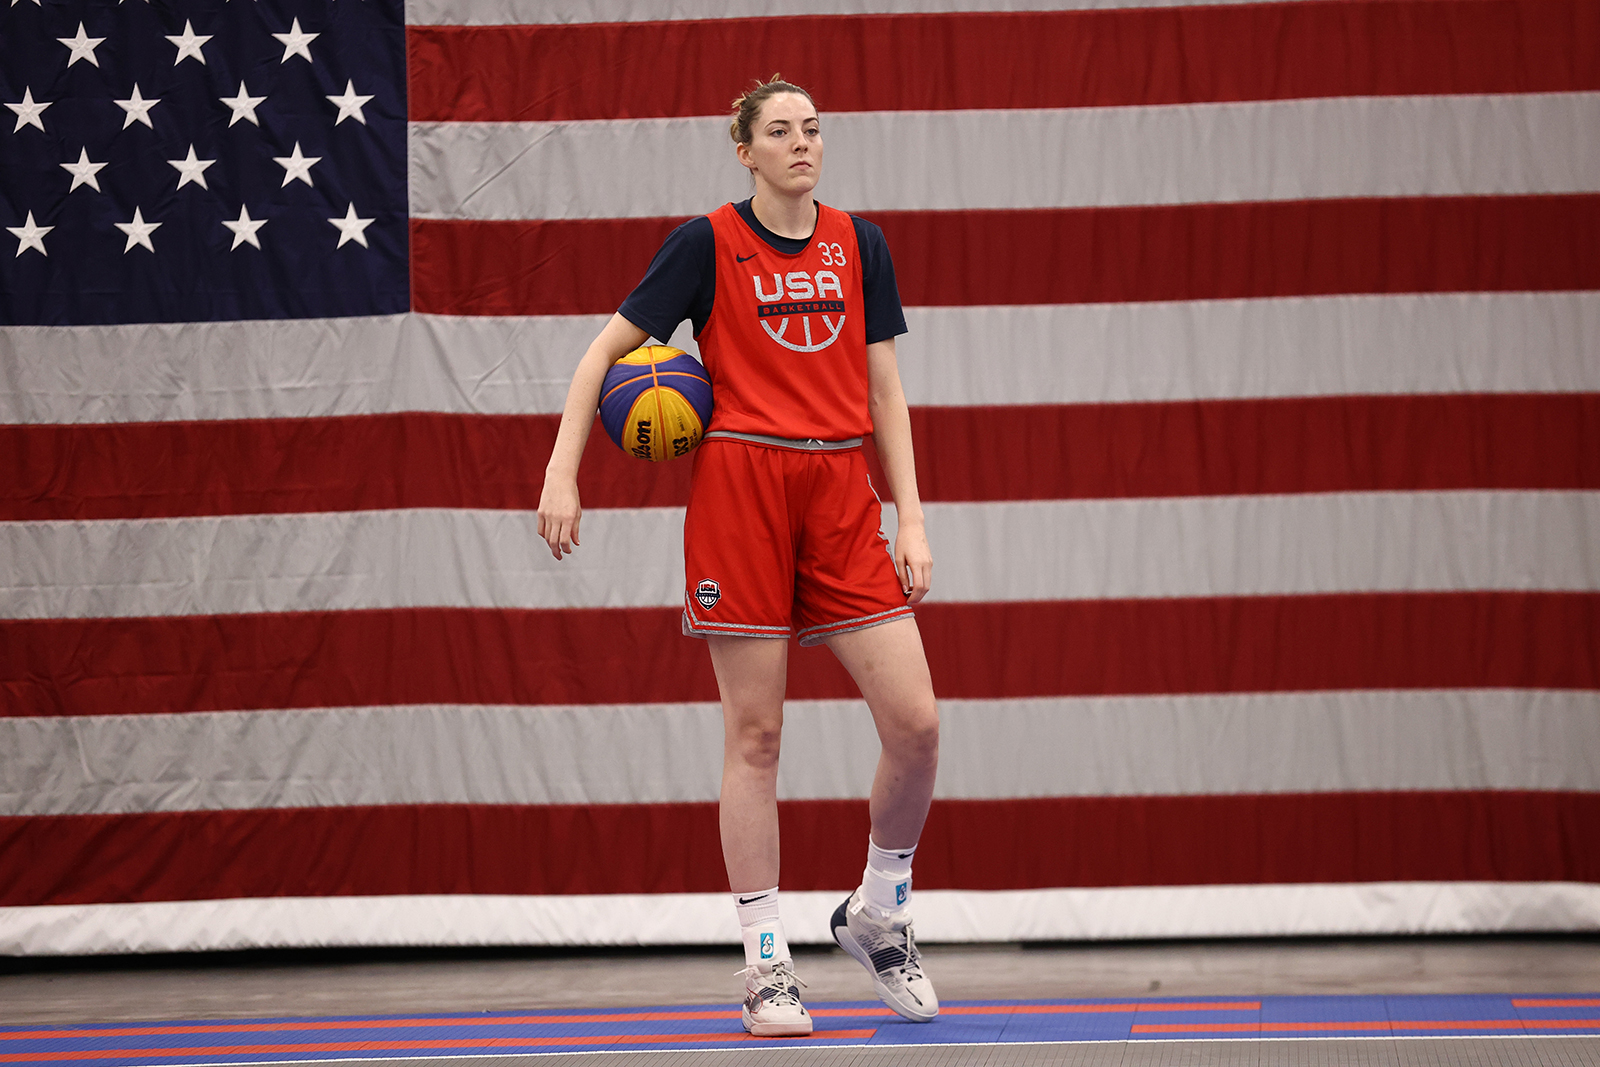 Katie Lou Samuelson #33 of the USA Women's National 3x3 Team looks on during USAB Womens 3x3 National Team practice at the Mandalay Bay Convention Center on July 17,  in Las Vegas, Nevada.